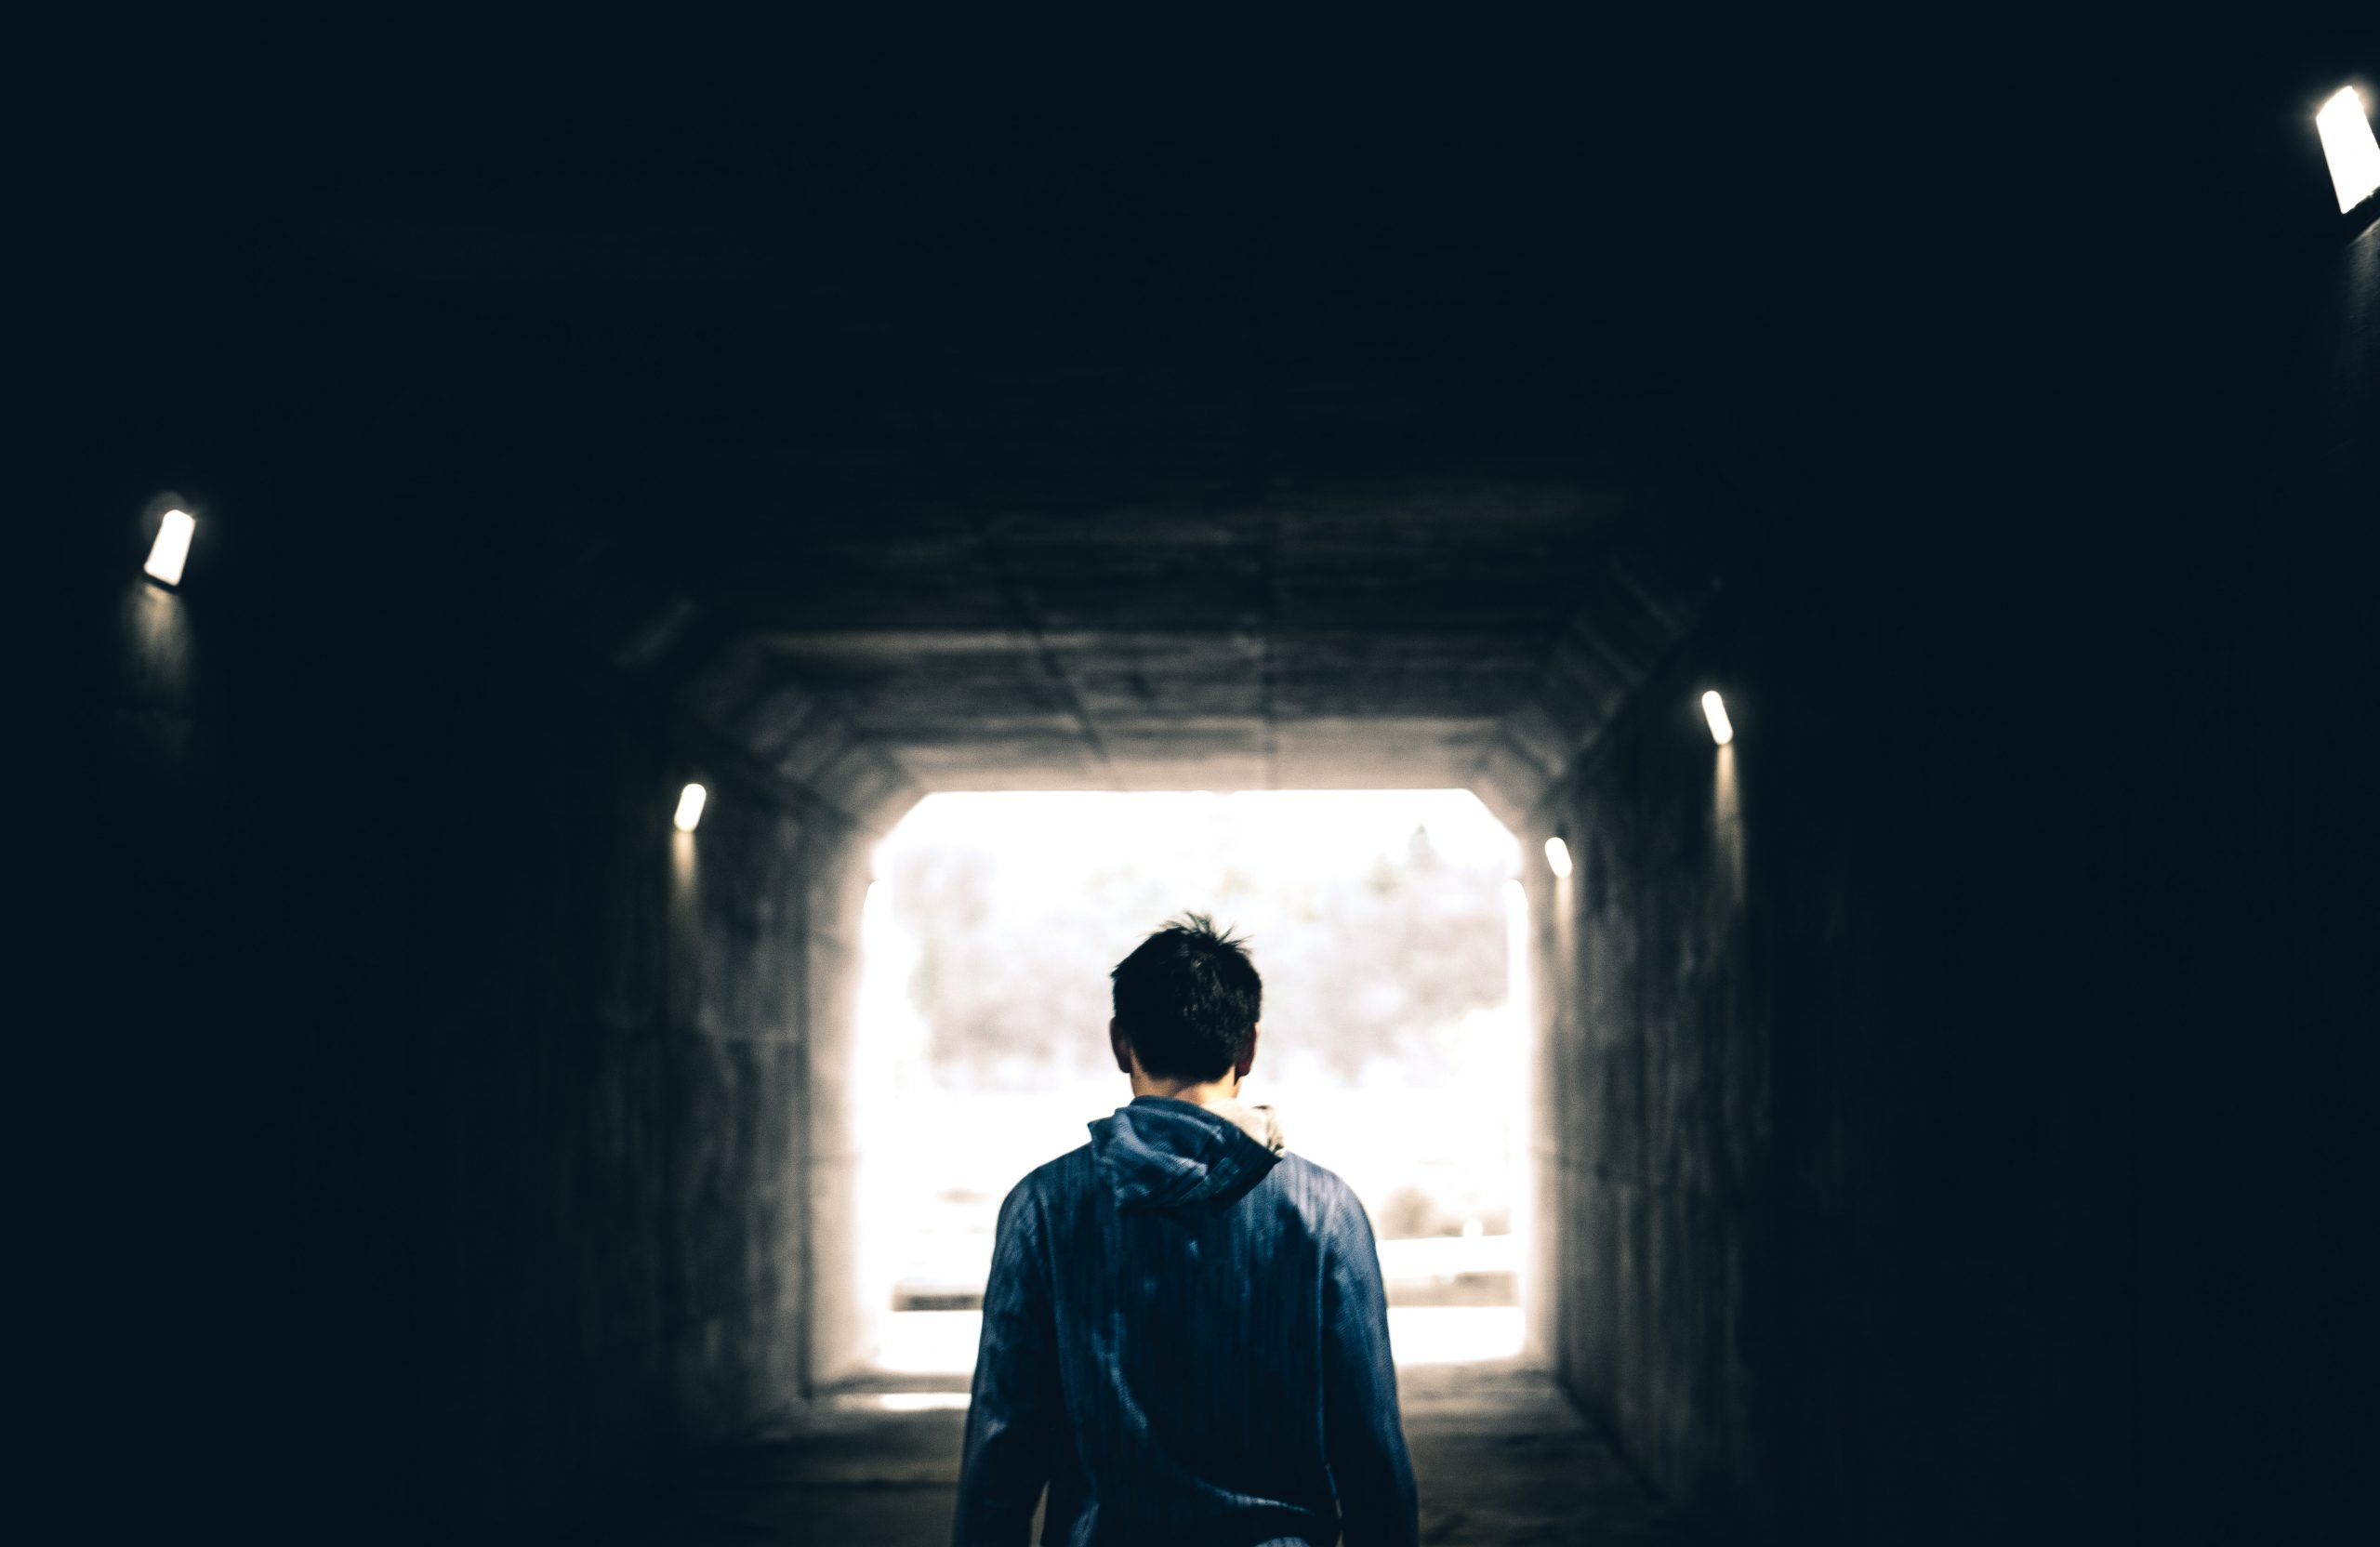 boy with anxiety in tunnel